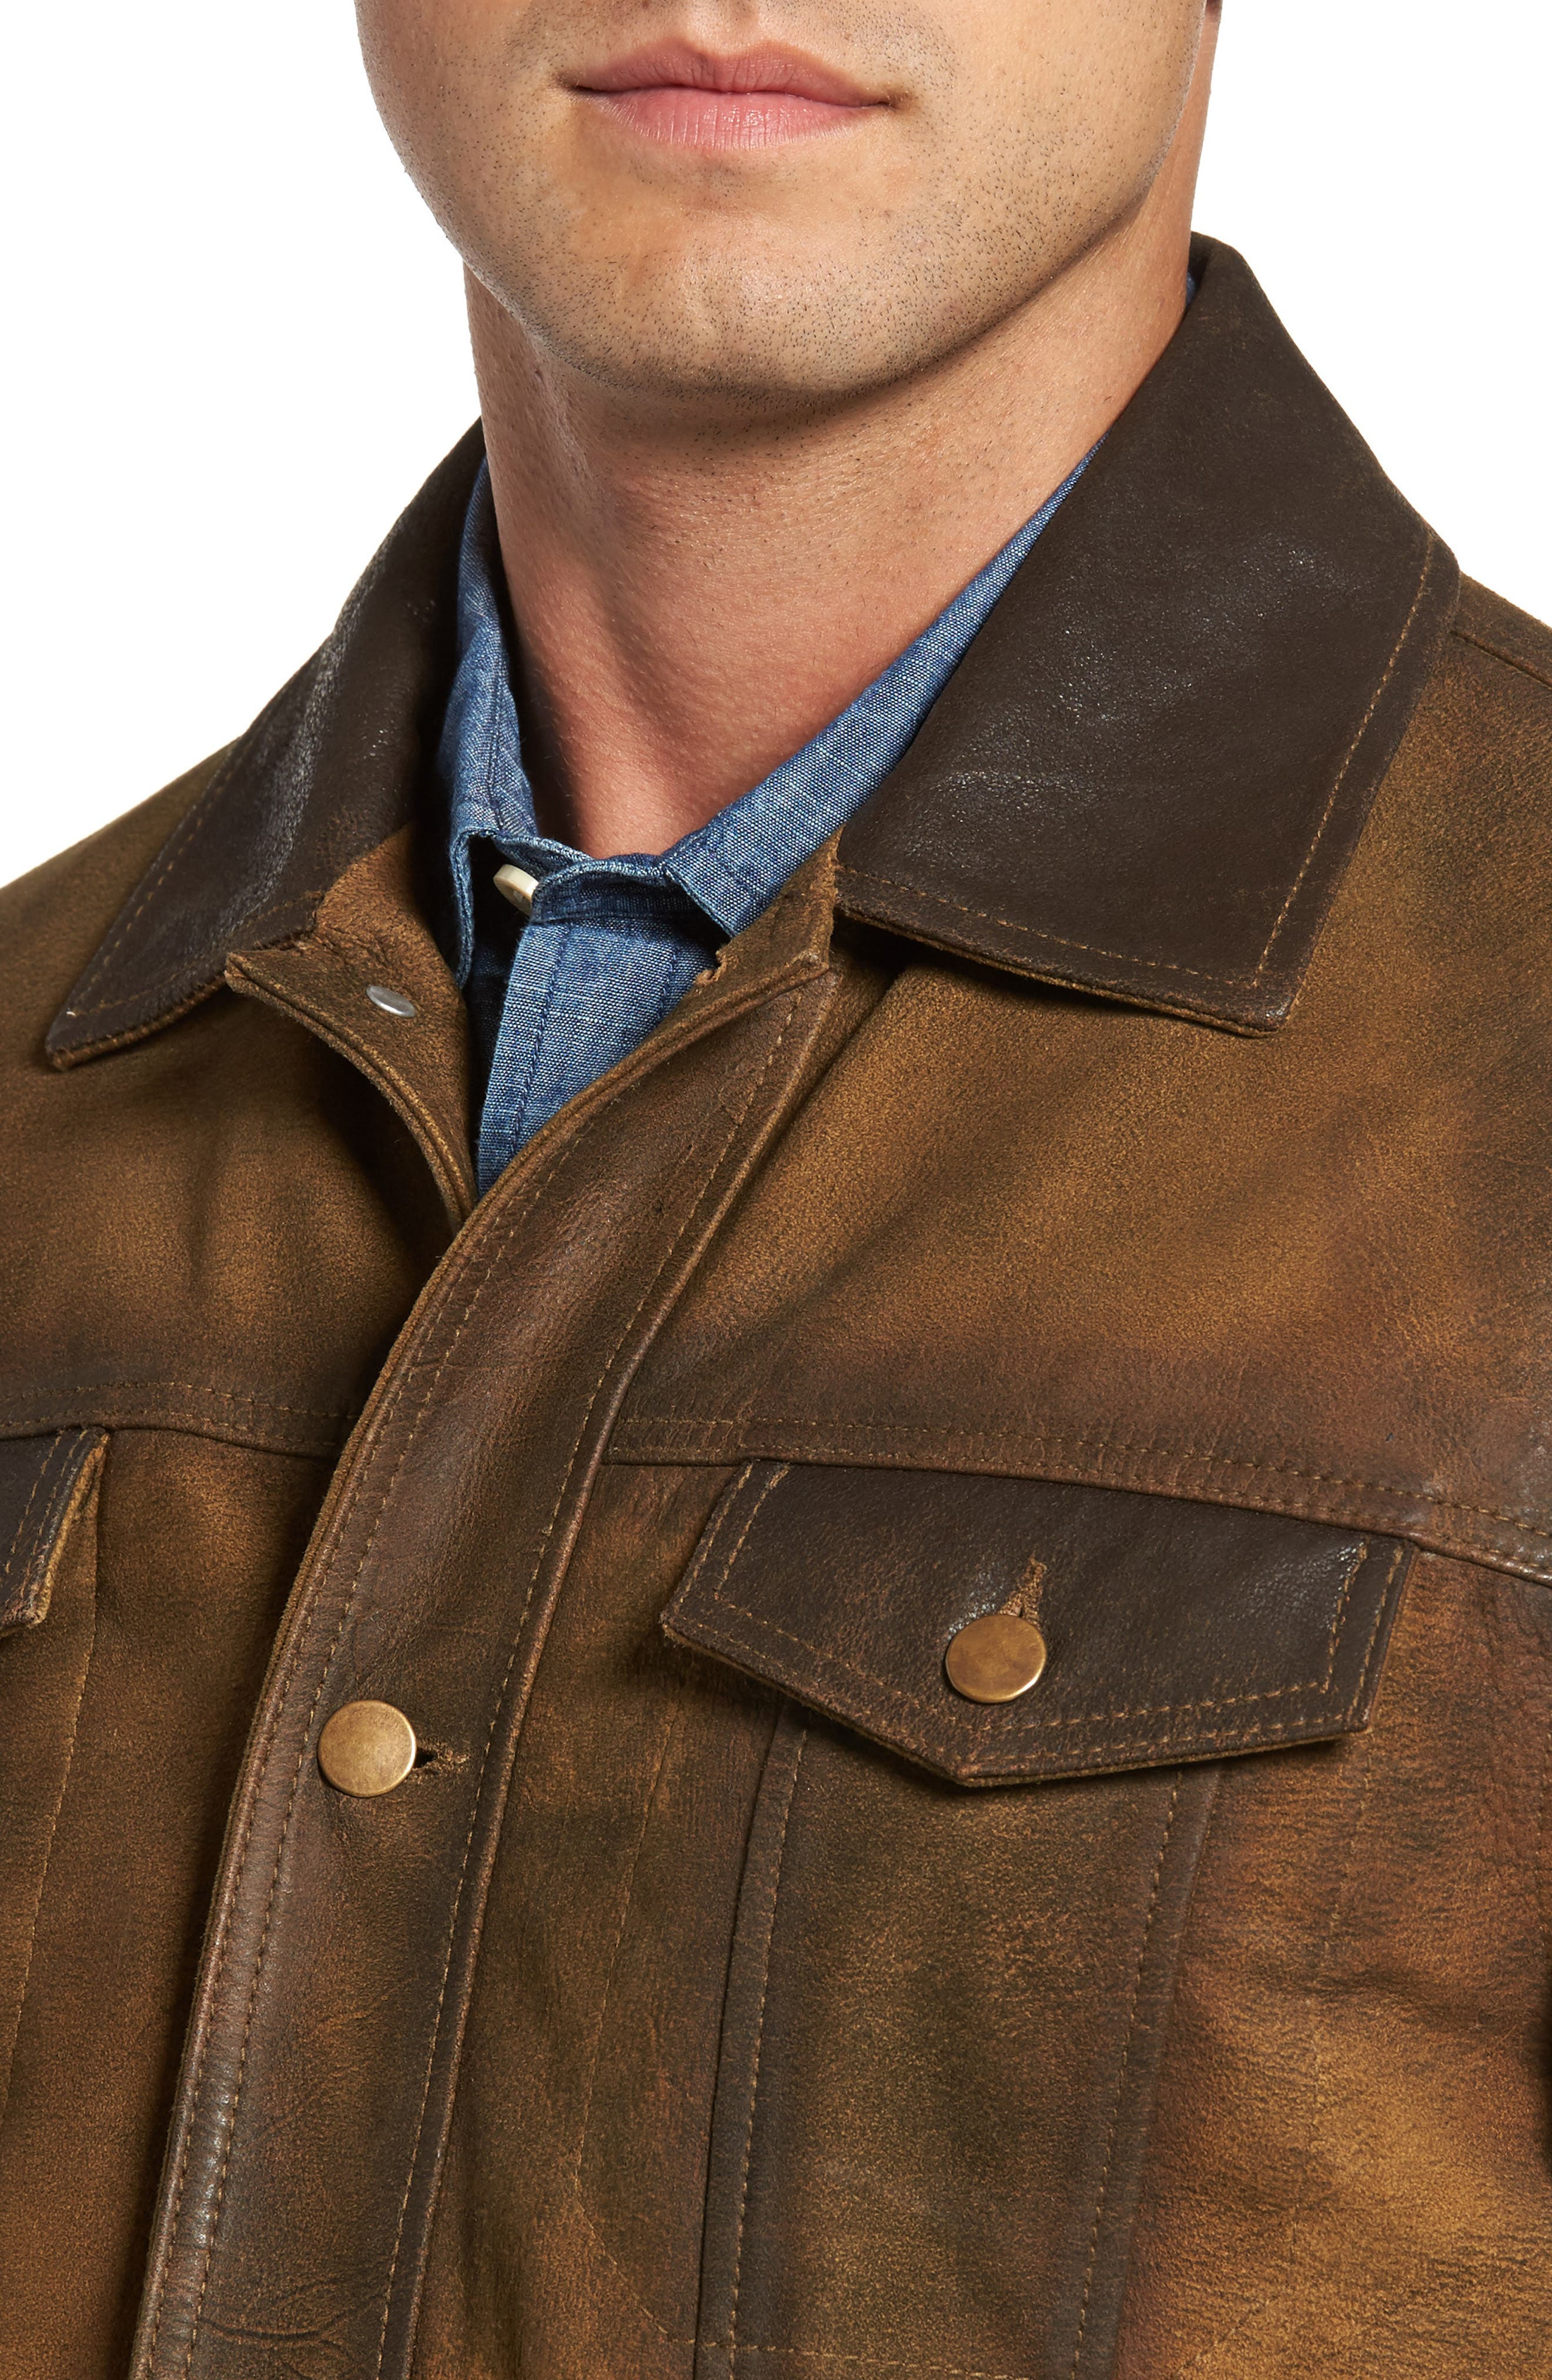 Distressed Leather Trucker Jacket,                             Alternate thumbnail 4, color,                             Brown